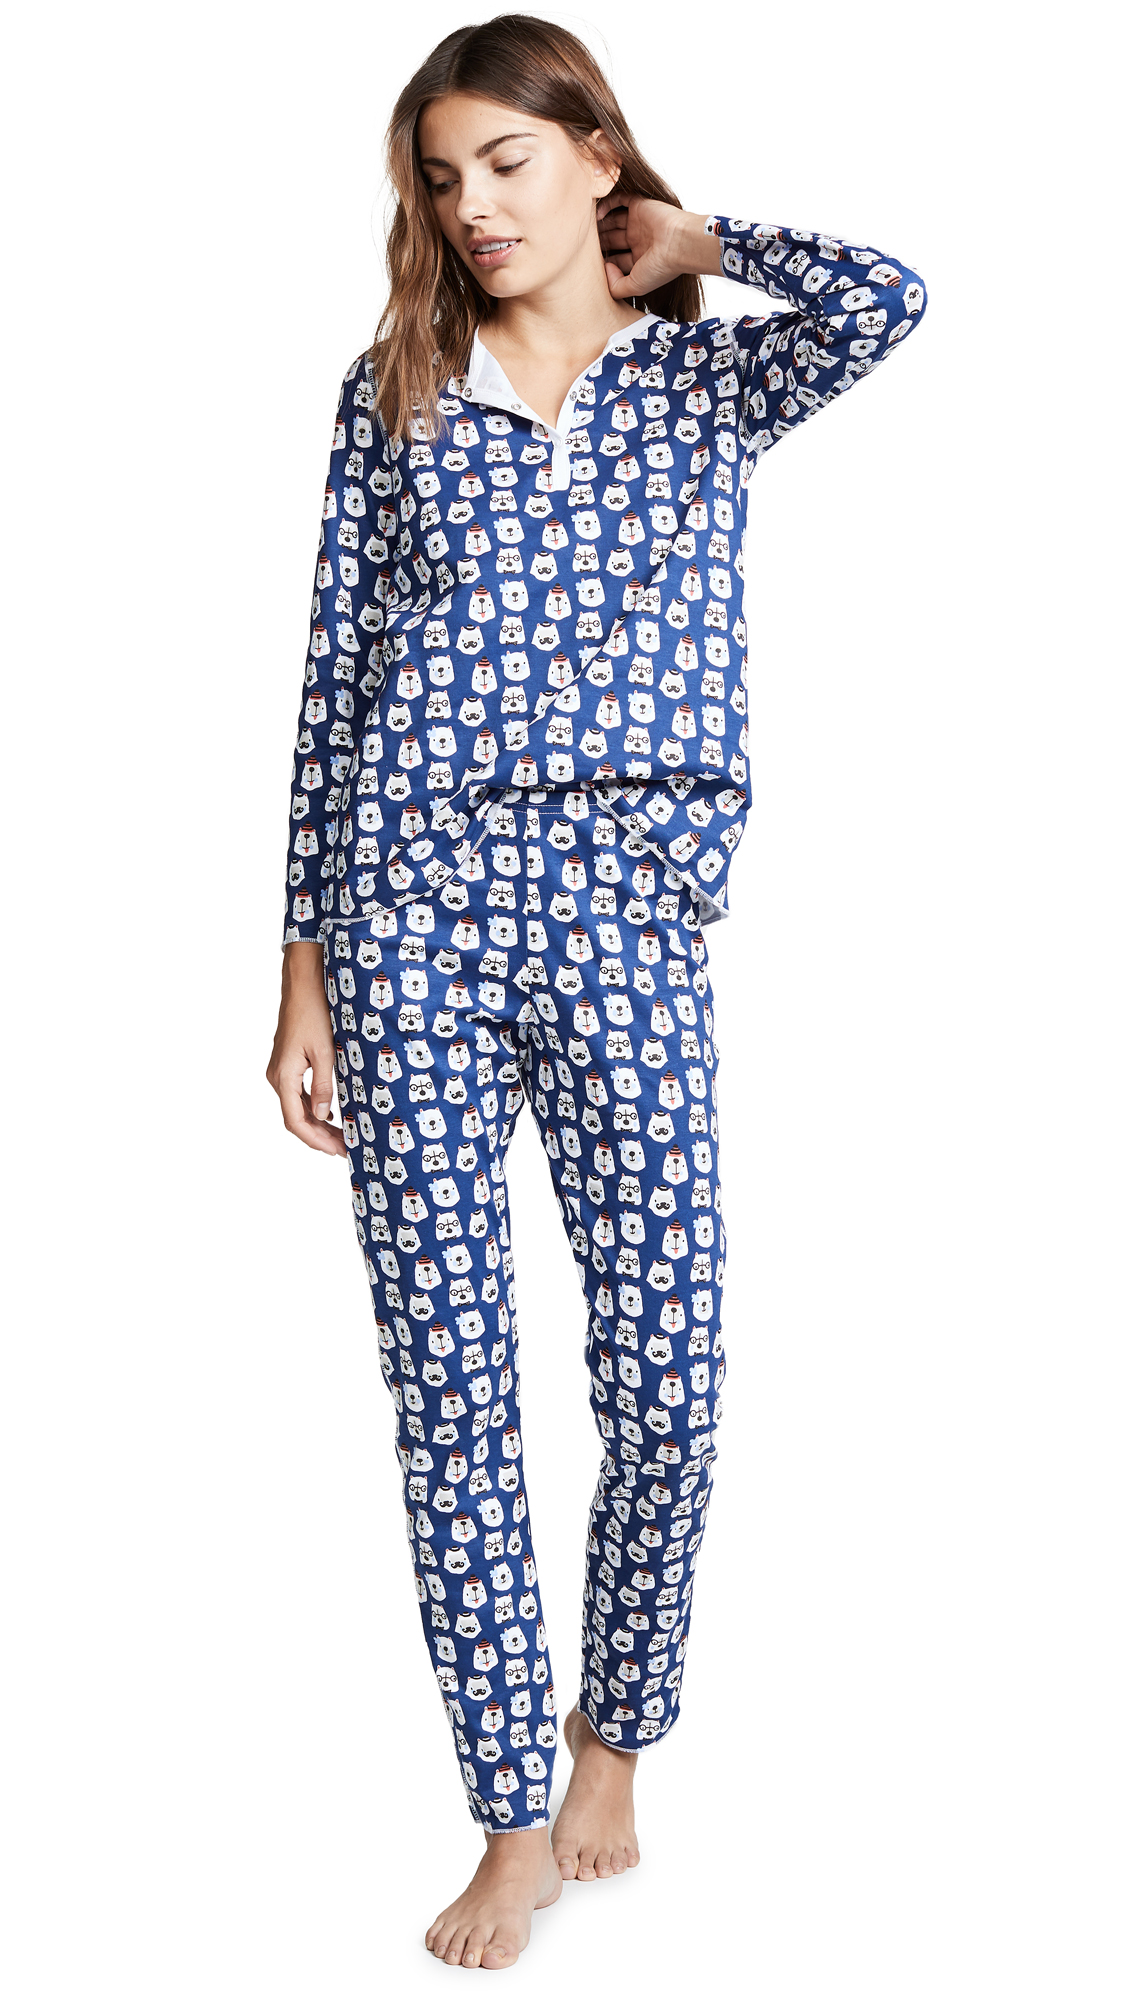 ROLLER RABBIT Bearry Holidays Pajamas in Blue